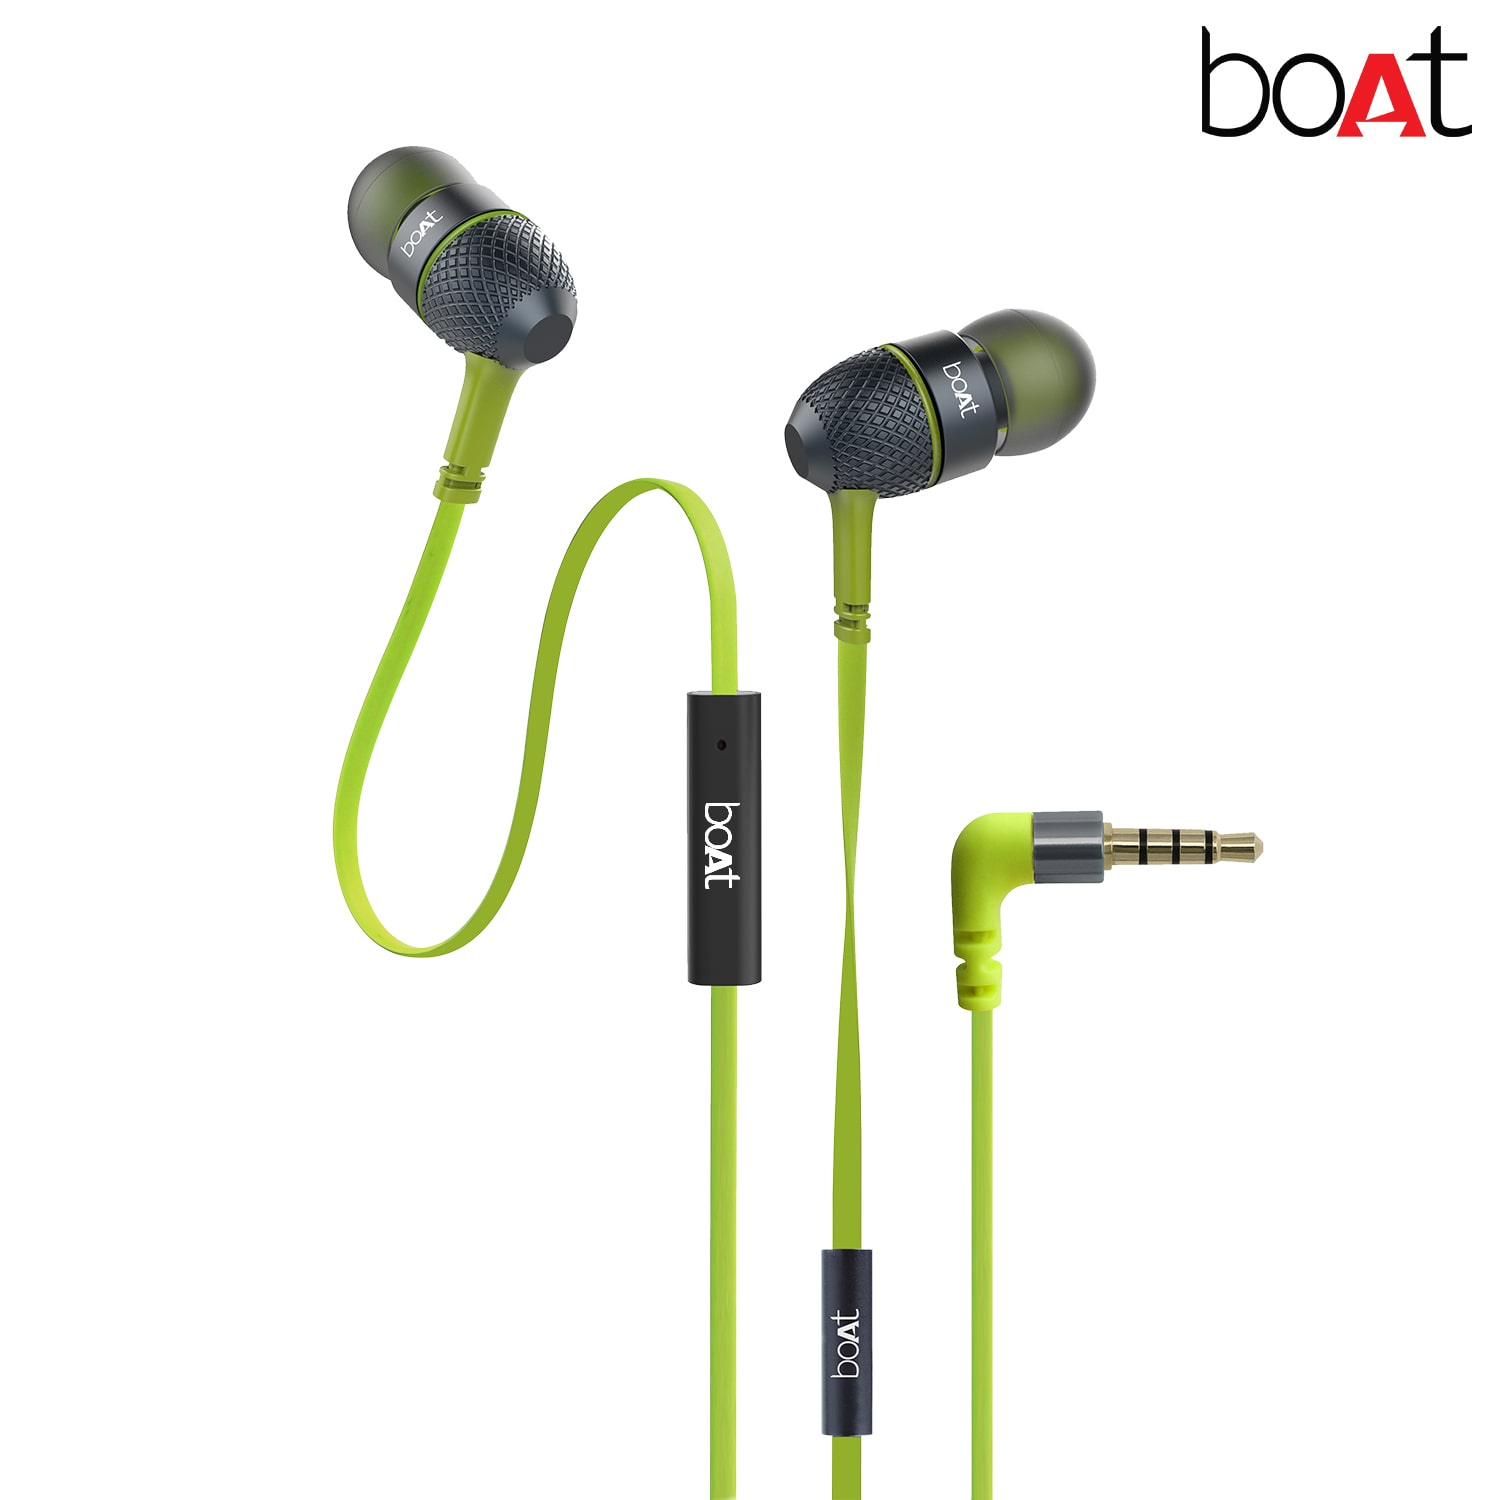 boAt BassHeads 225 Super Extra Bass In-Ear wired Headphones with Mic (Neon Lime)